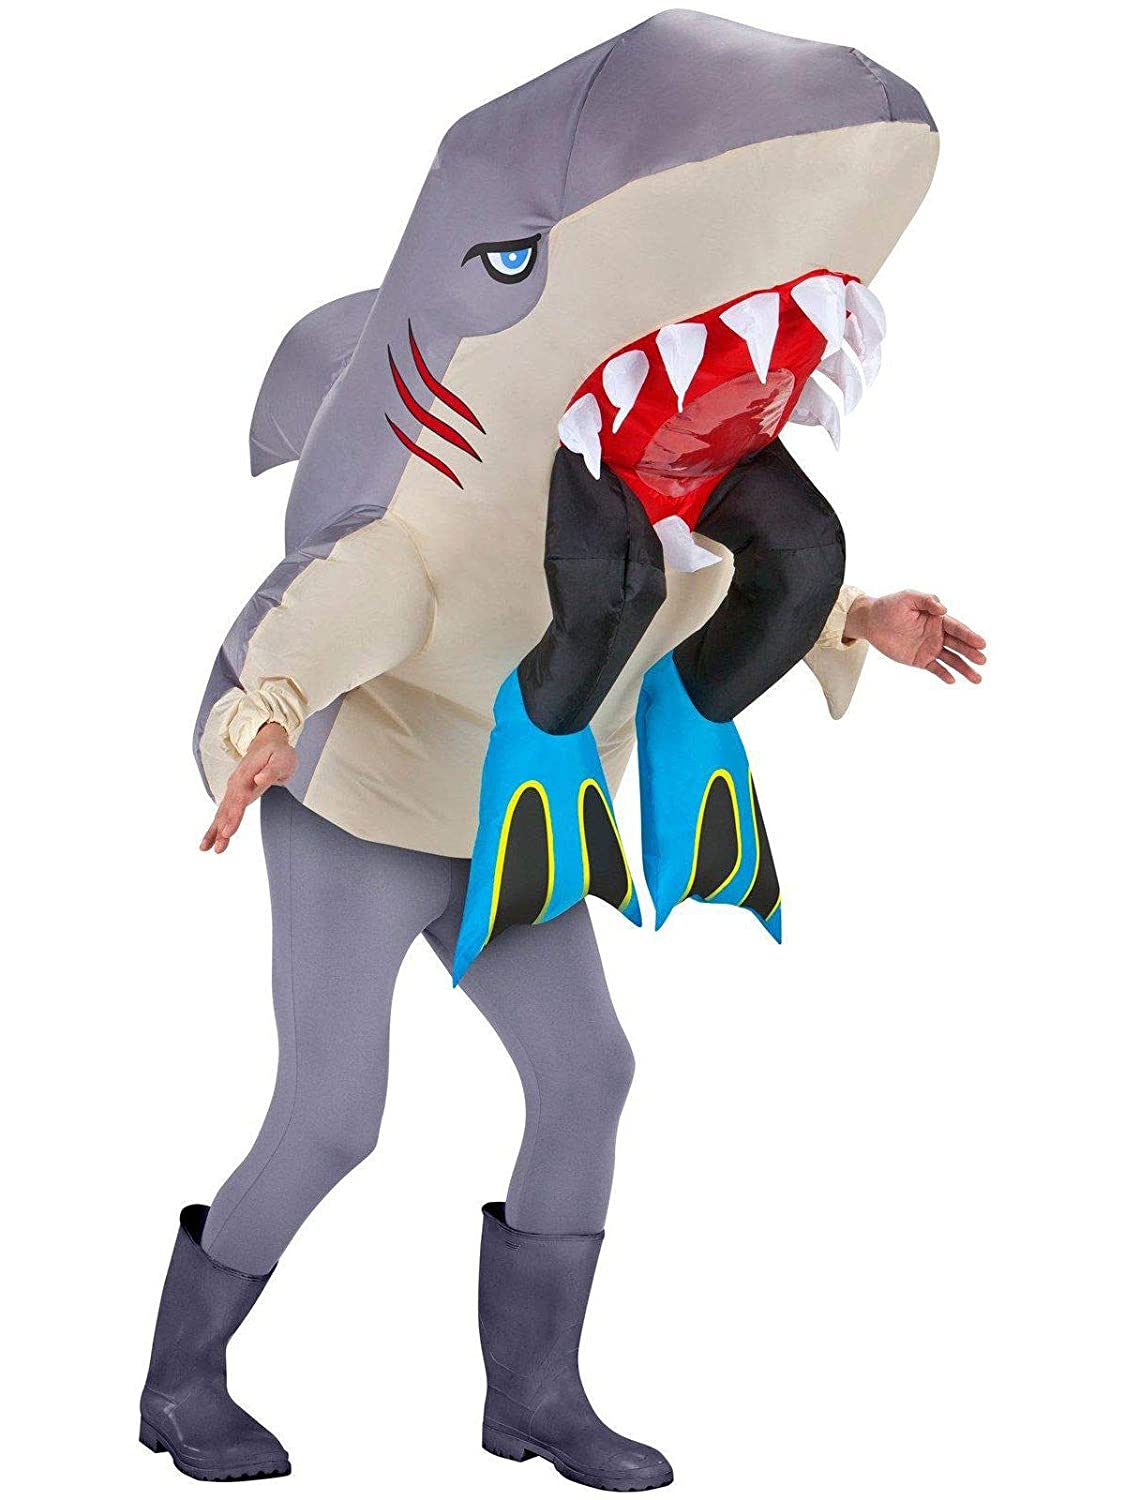 Inflatable Shark Costume - Halloween Costume for Men and Women - Funny Costumes